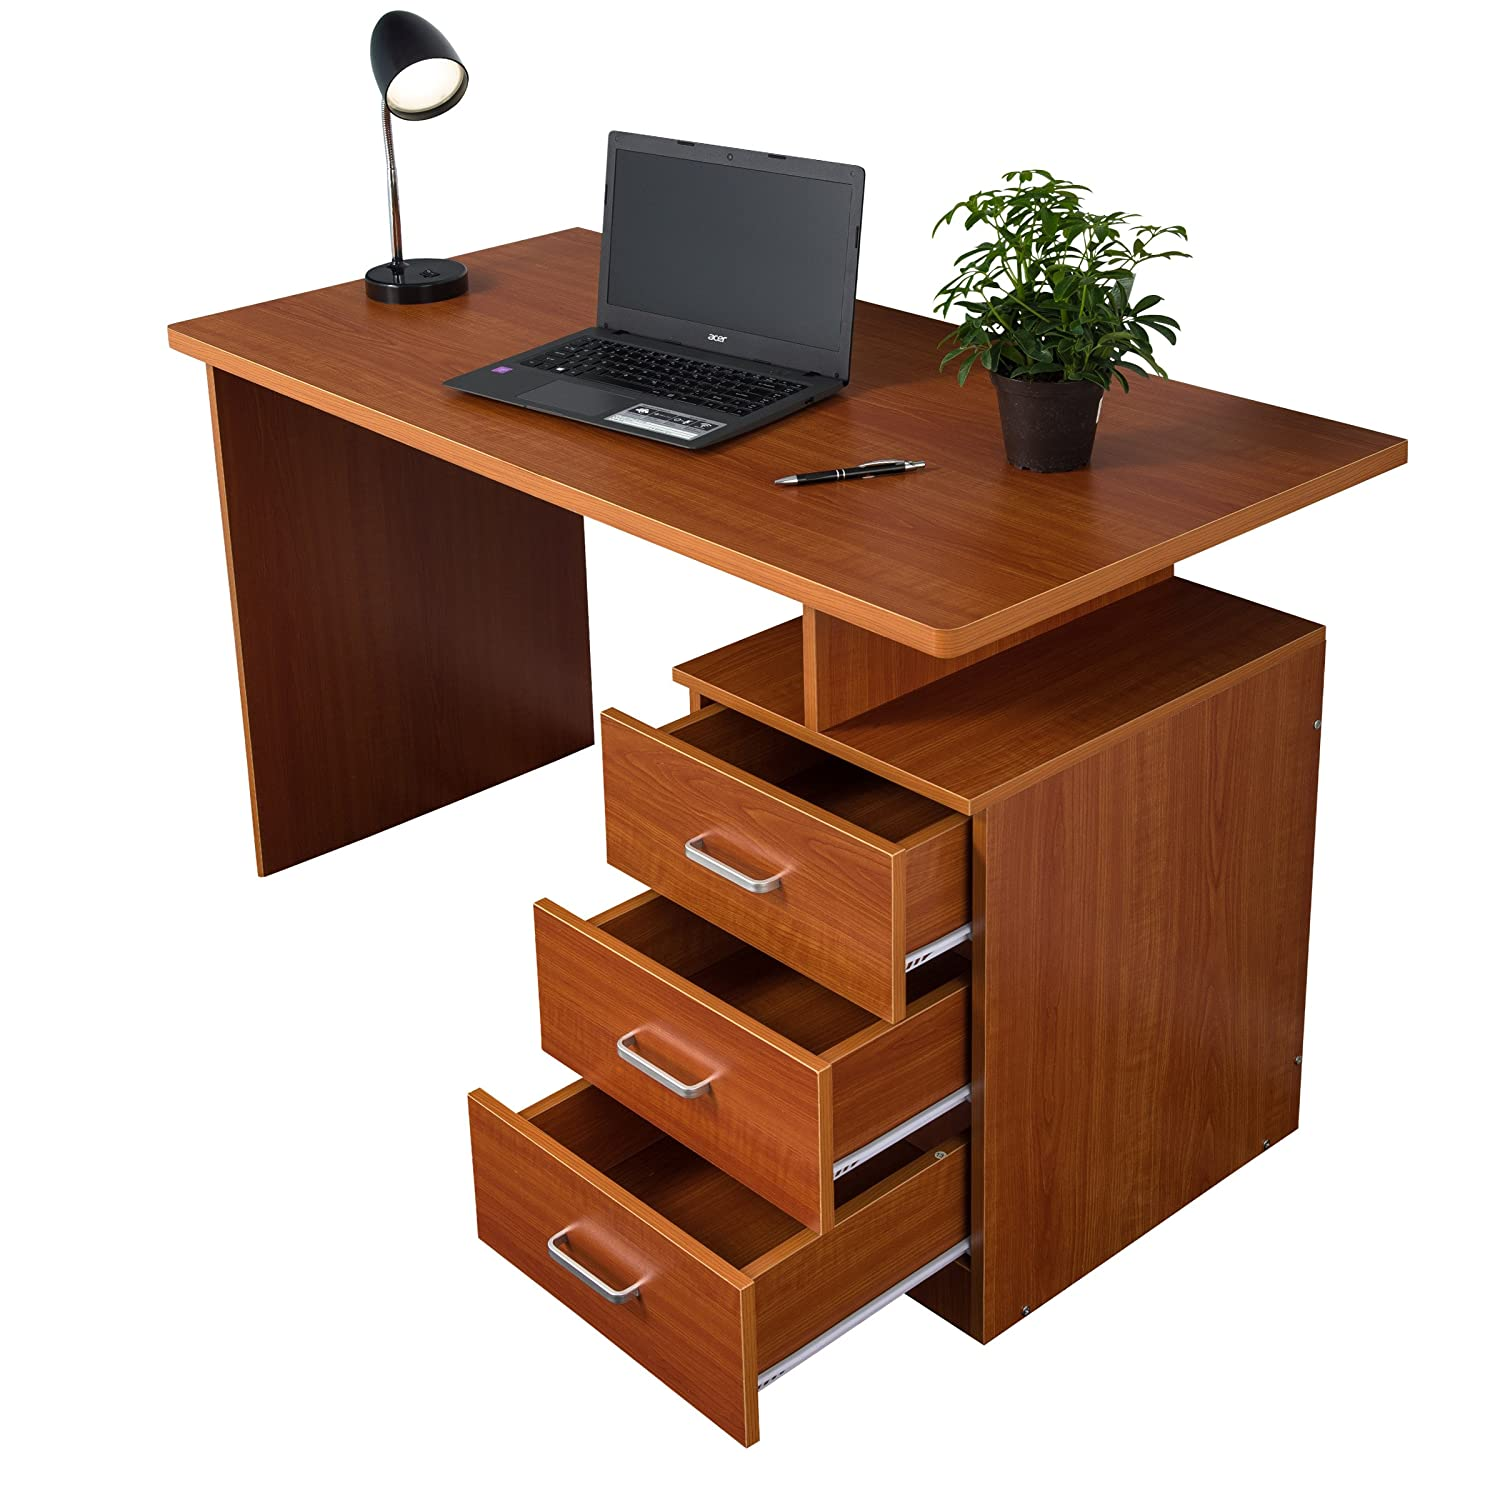 table home uk shelves beech dp computer co redstone drawers workstation amazon office kitchen desk